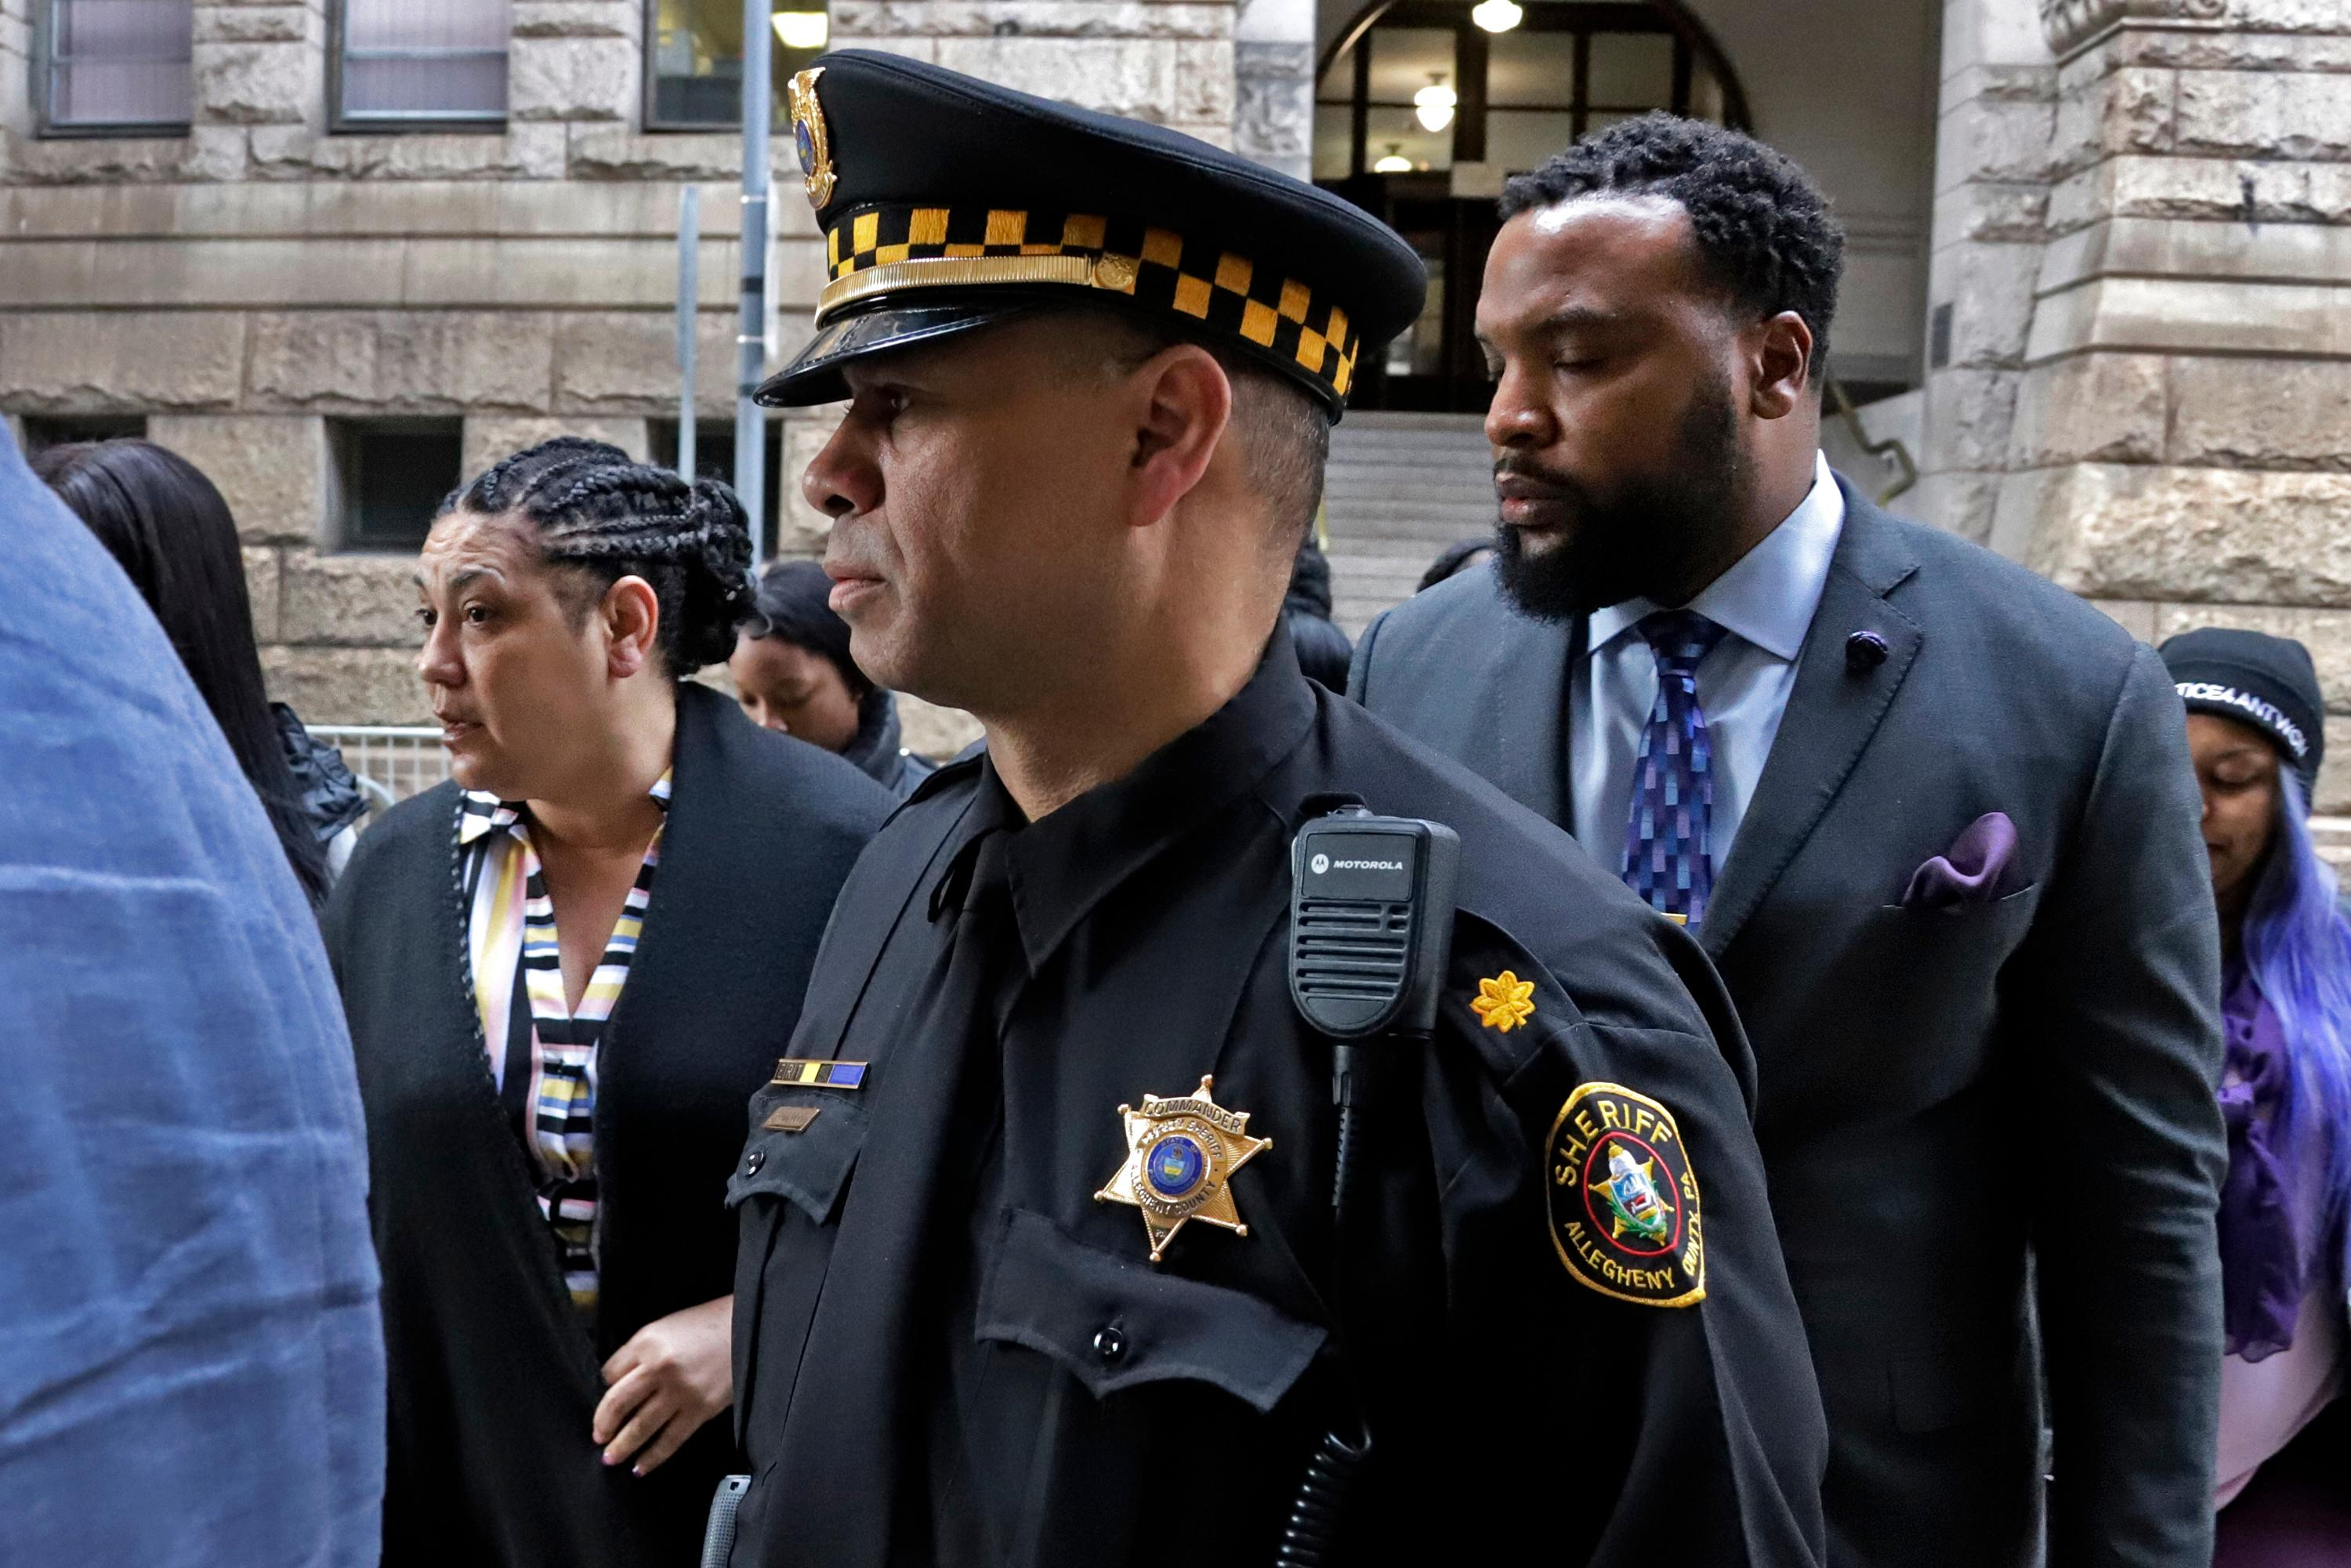 Michelle Kenney, left, the mother of Antwon Rose II, leaves the Allegheny County Courthouse with her lawyer S. Lee Merritt, right, after day two of the trial for Michael Rosfeld, a former police officer in East Pittsburgh, Pa., Wednesday, March 20, 2019. Rosfeld is charged with homicide in the fatal shooting of Antwon Rose II as he fled during a traffic stop on June 19, 2018. (AP Photo/Gene J. Puskar)